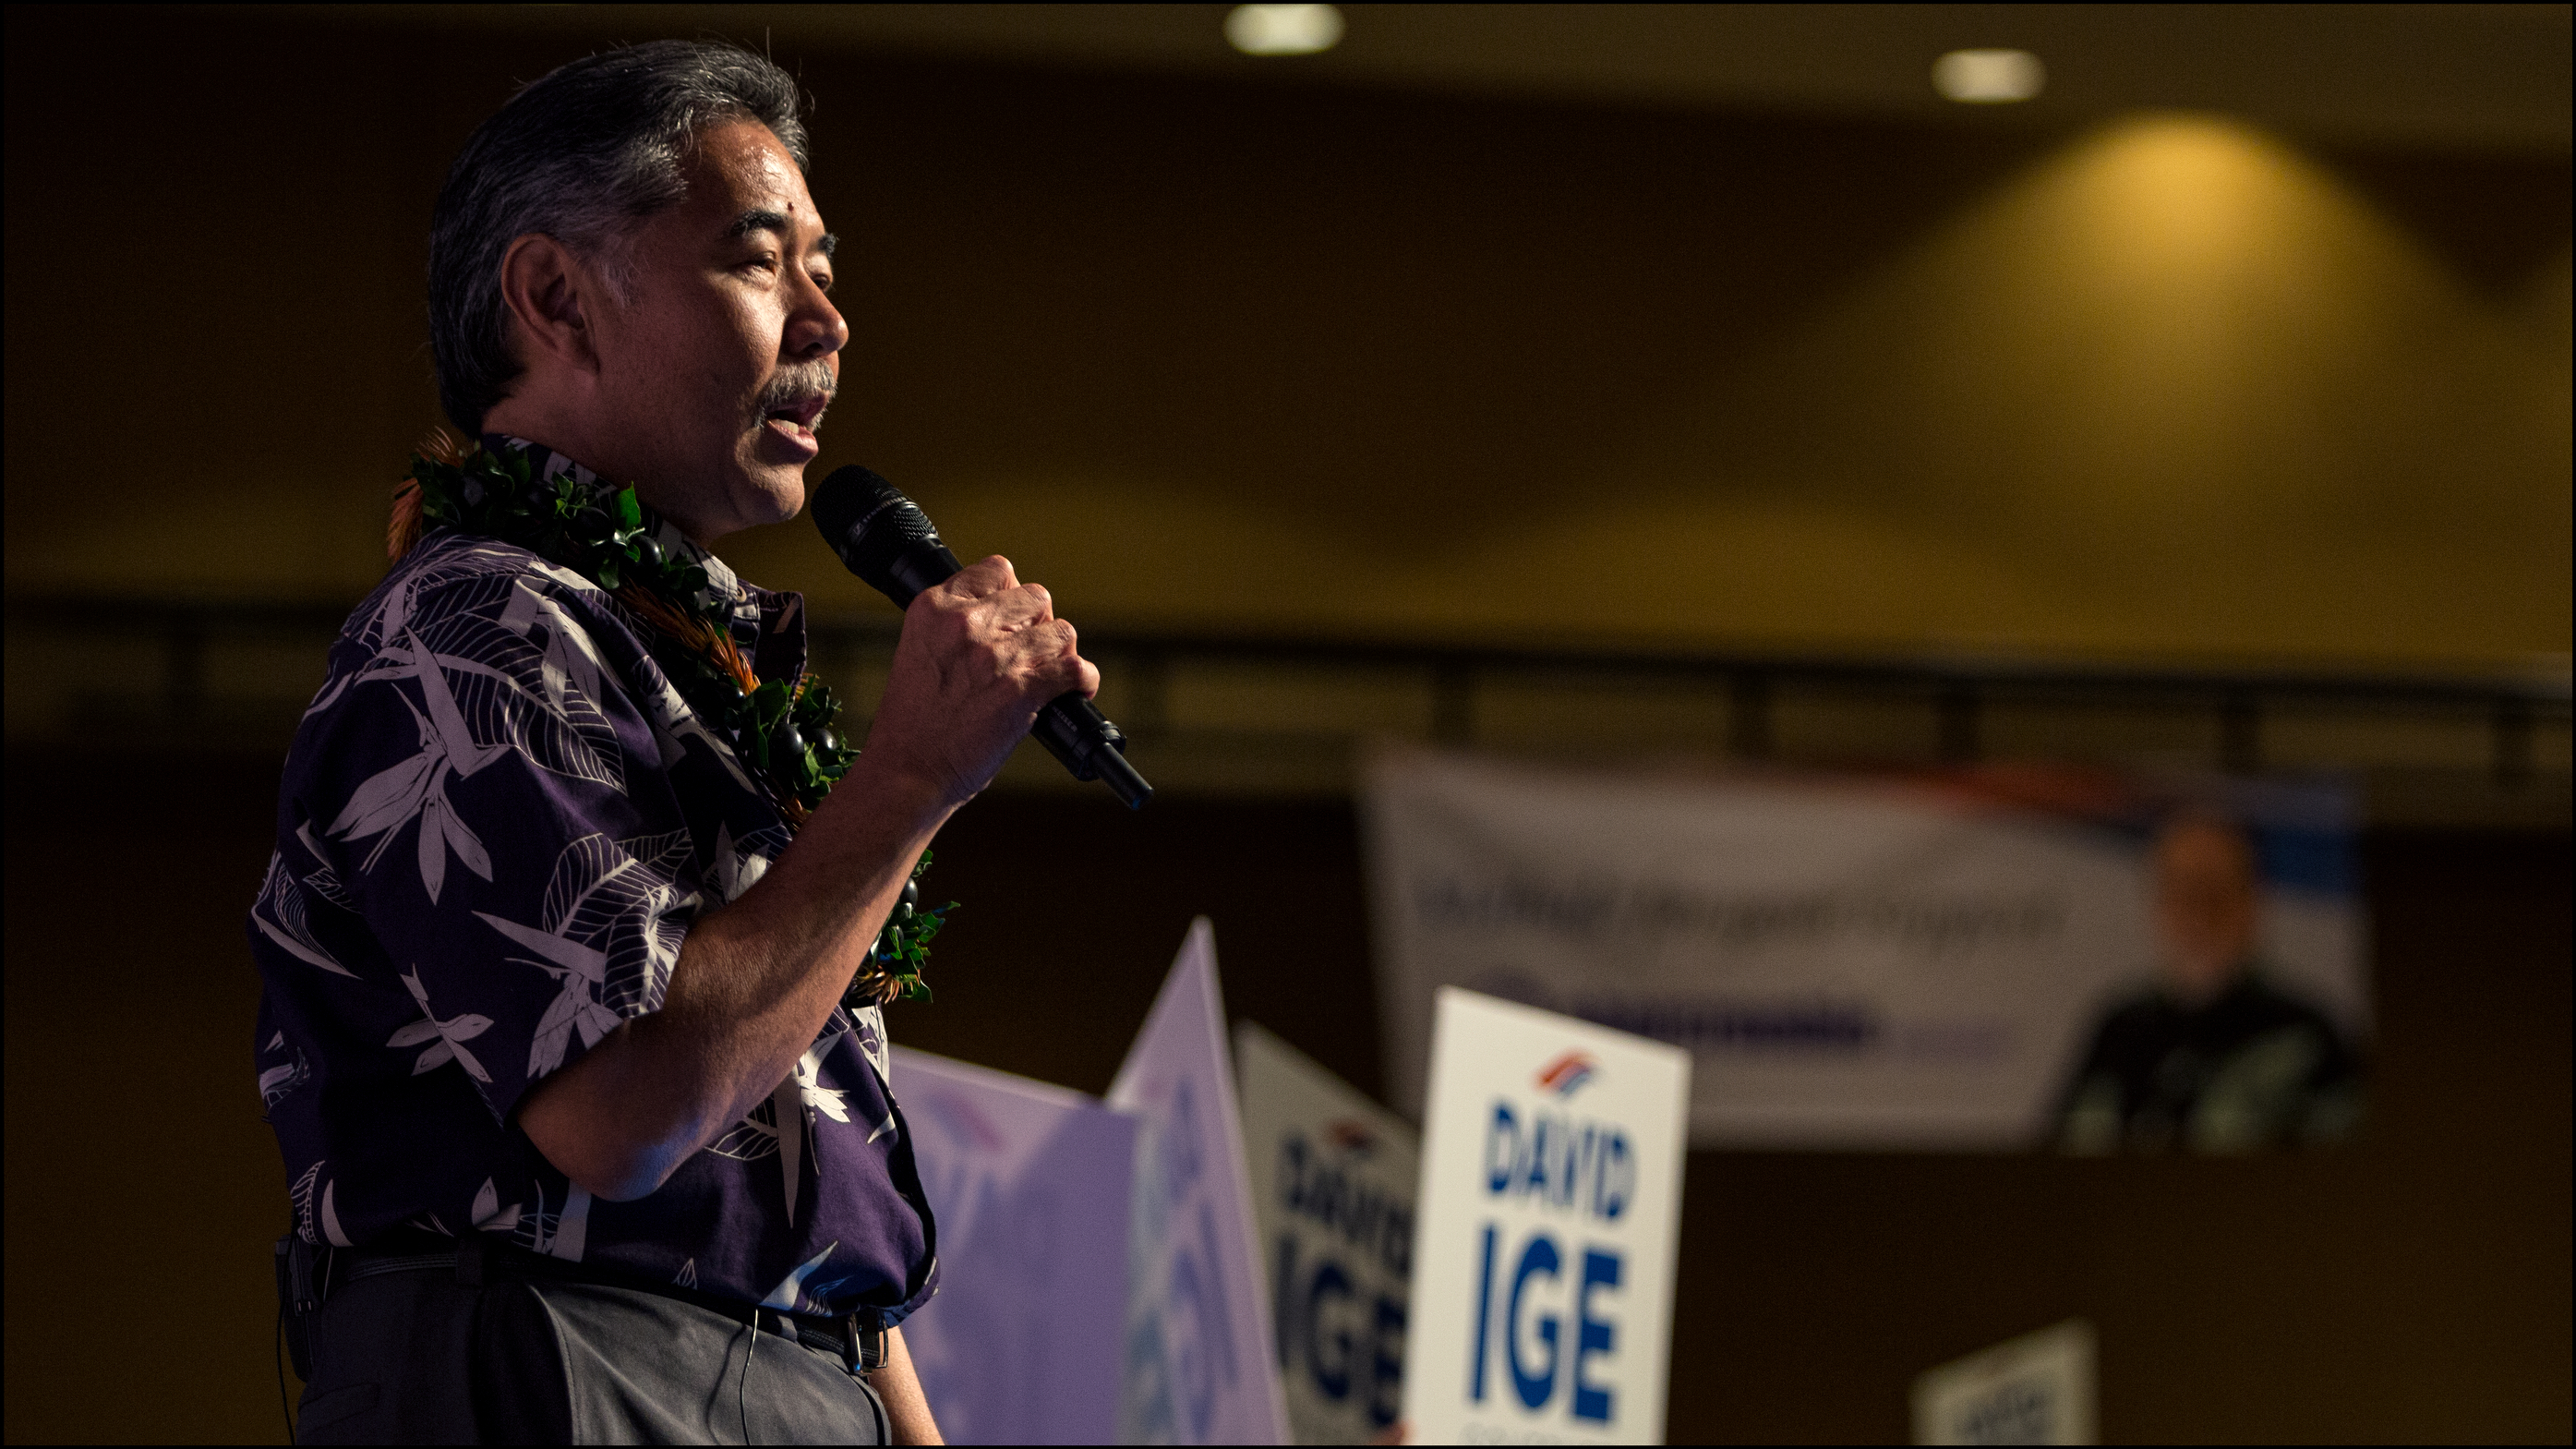 Ige Holds Healthy Lead Over Abercrombie In Hawaii Governor